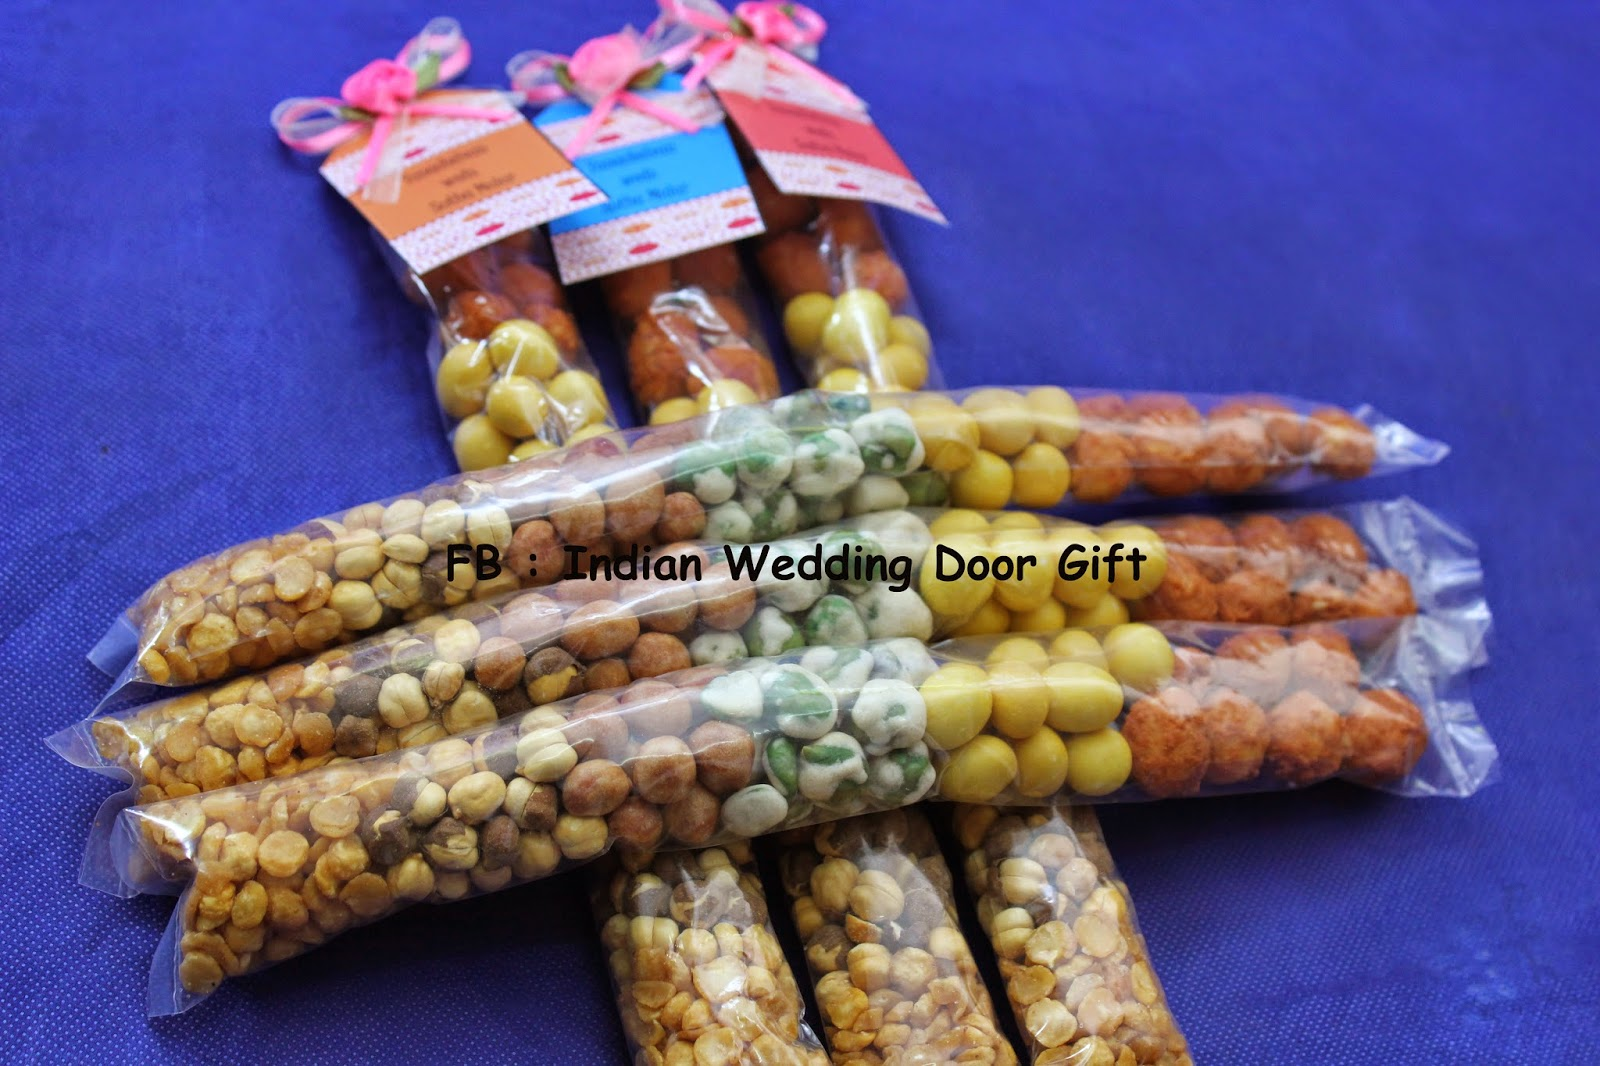 Door Gift For Wedding: Indian Wedding Door Gift: May 2014